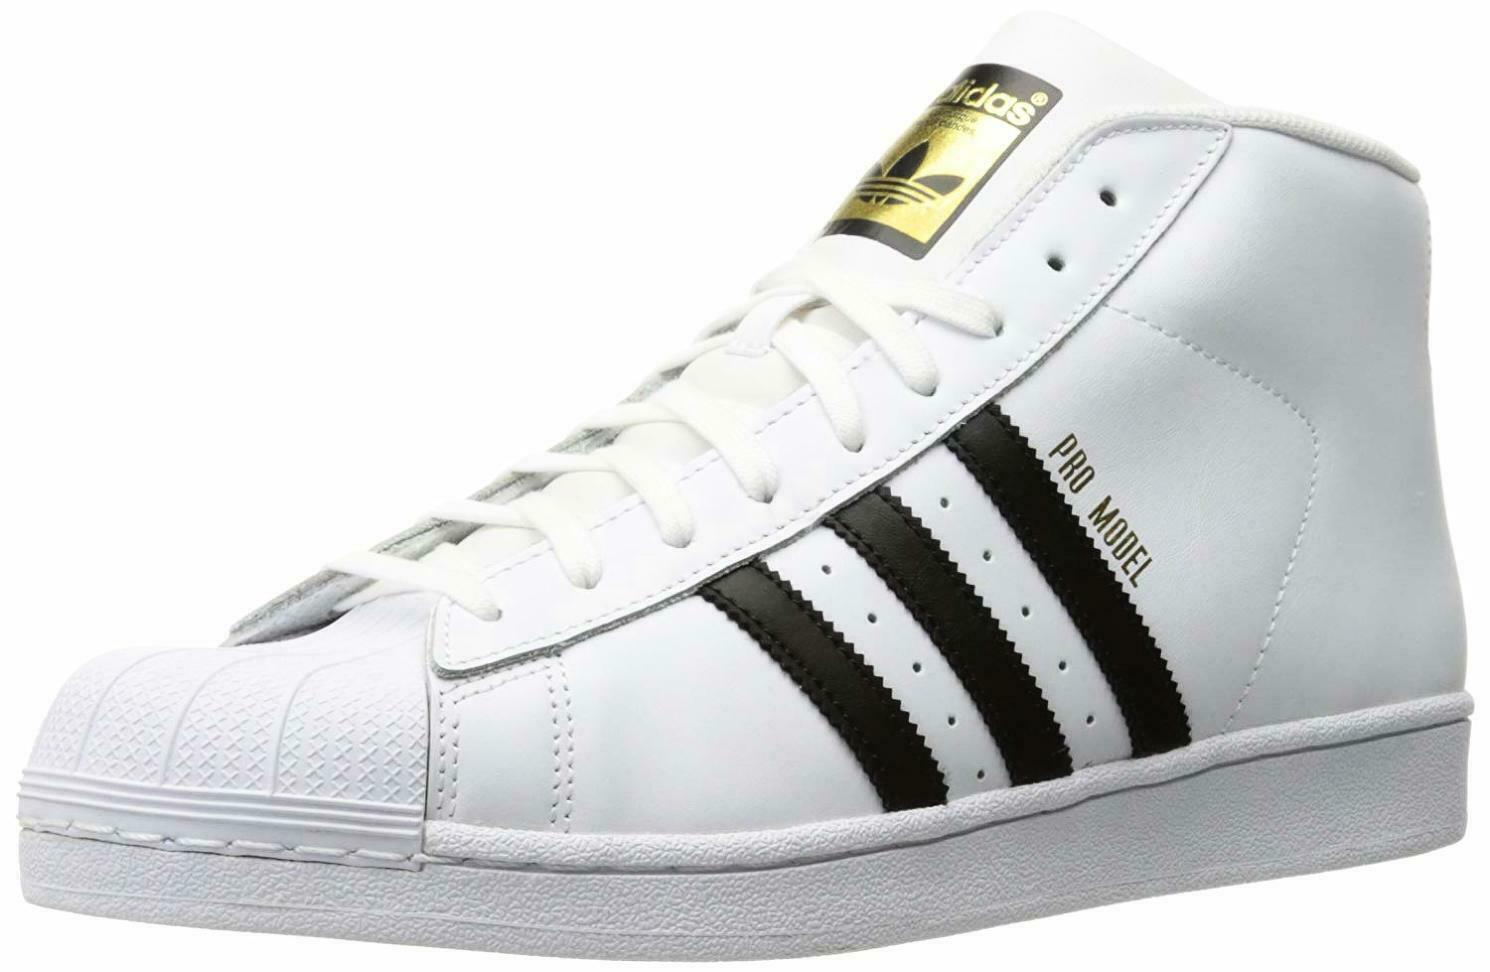 Adidas Originals Originals Originals Men's Pro Model Fashion Sneaker 533197